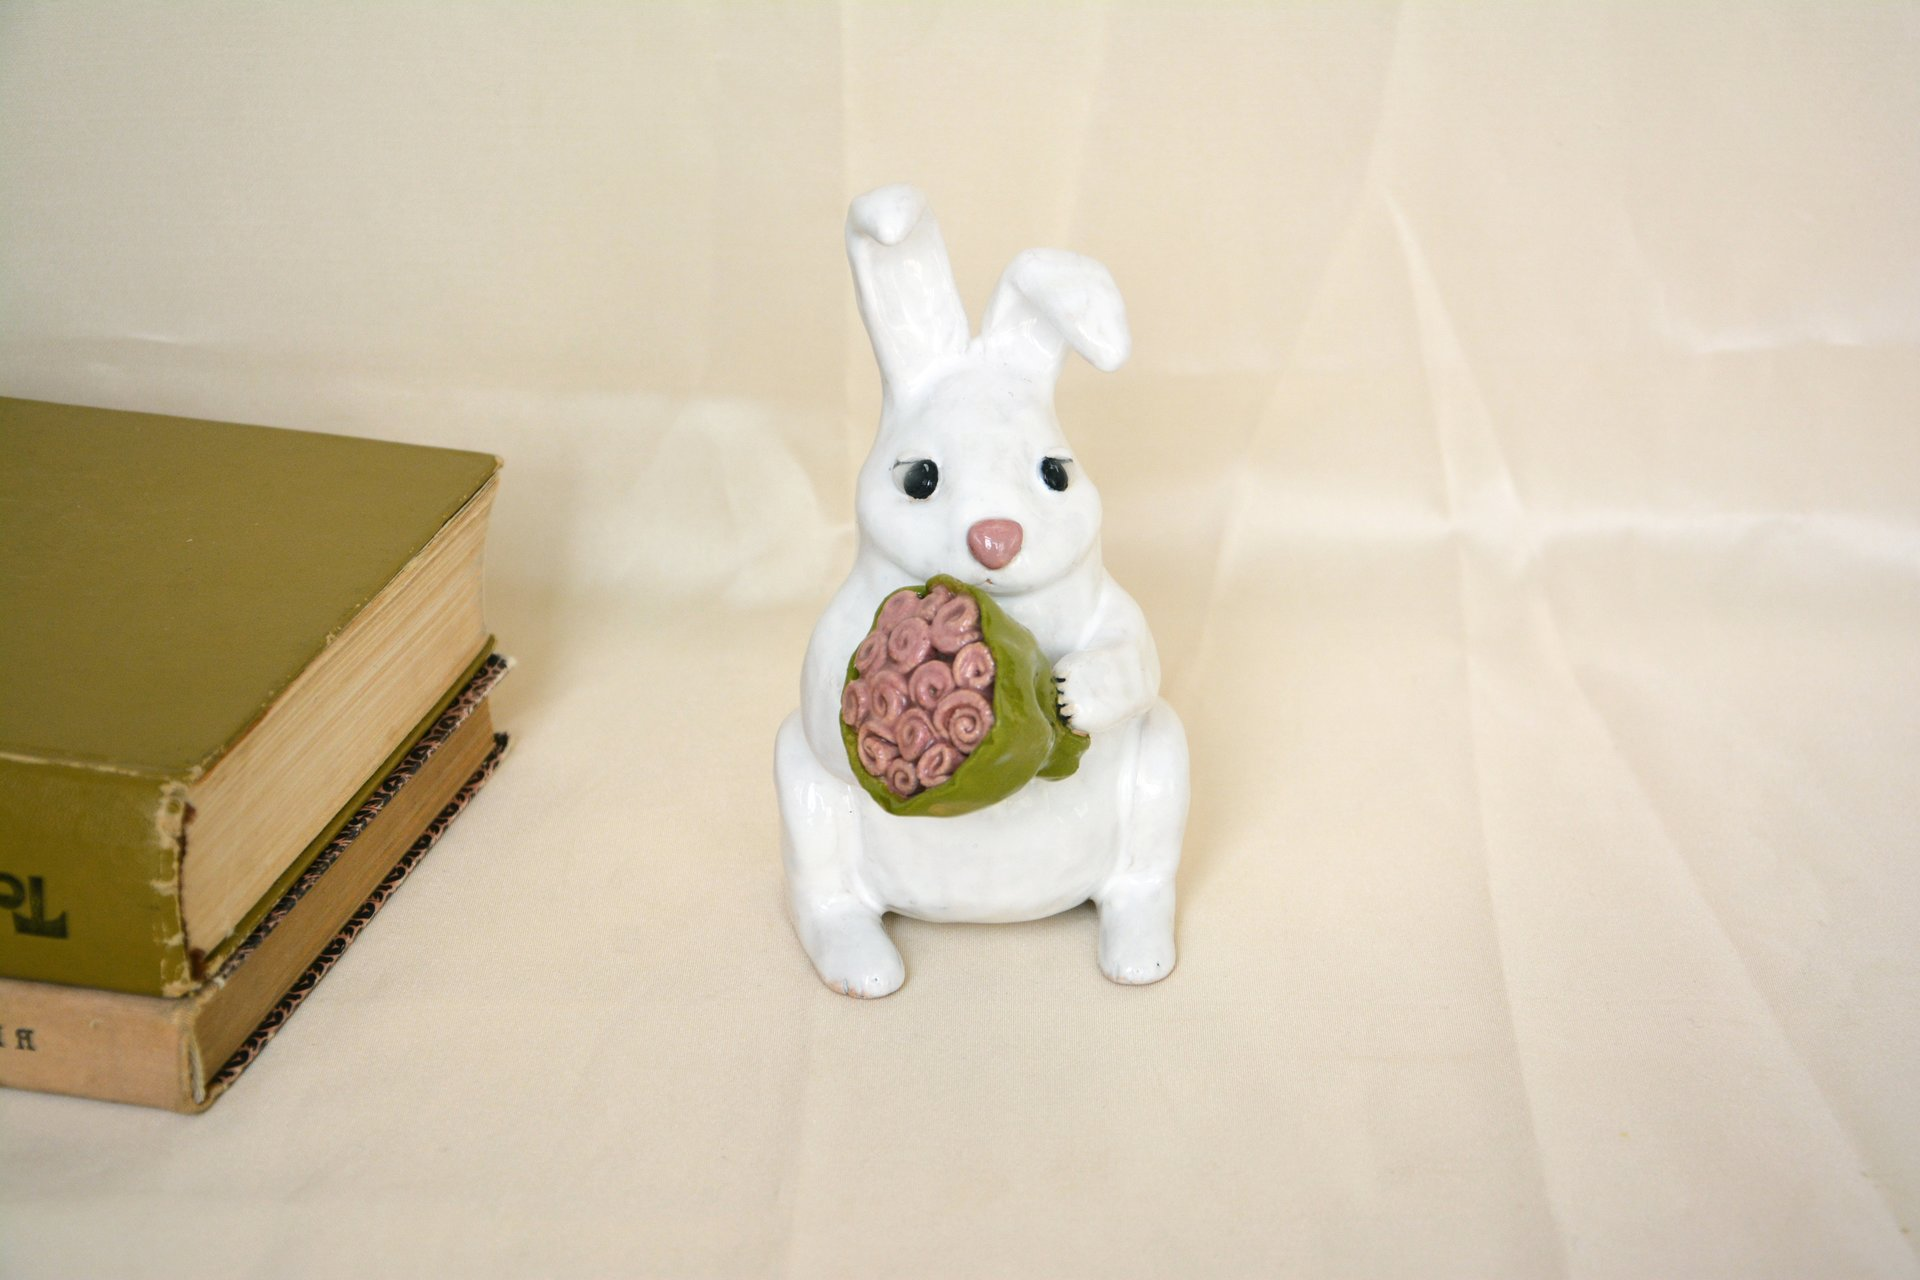 Bunny with bouquet for mom - Animals and birds, height - 13 cm, photo 1 of 2.